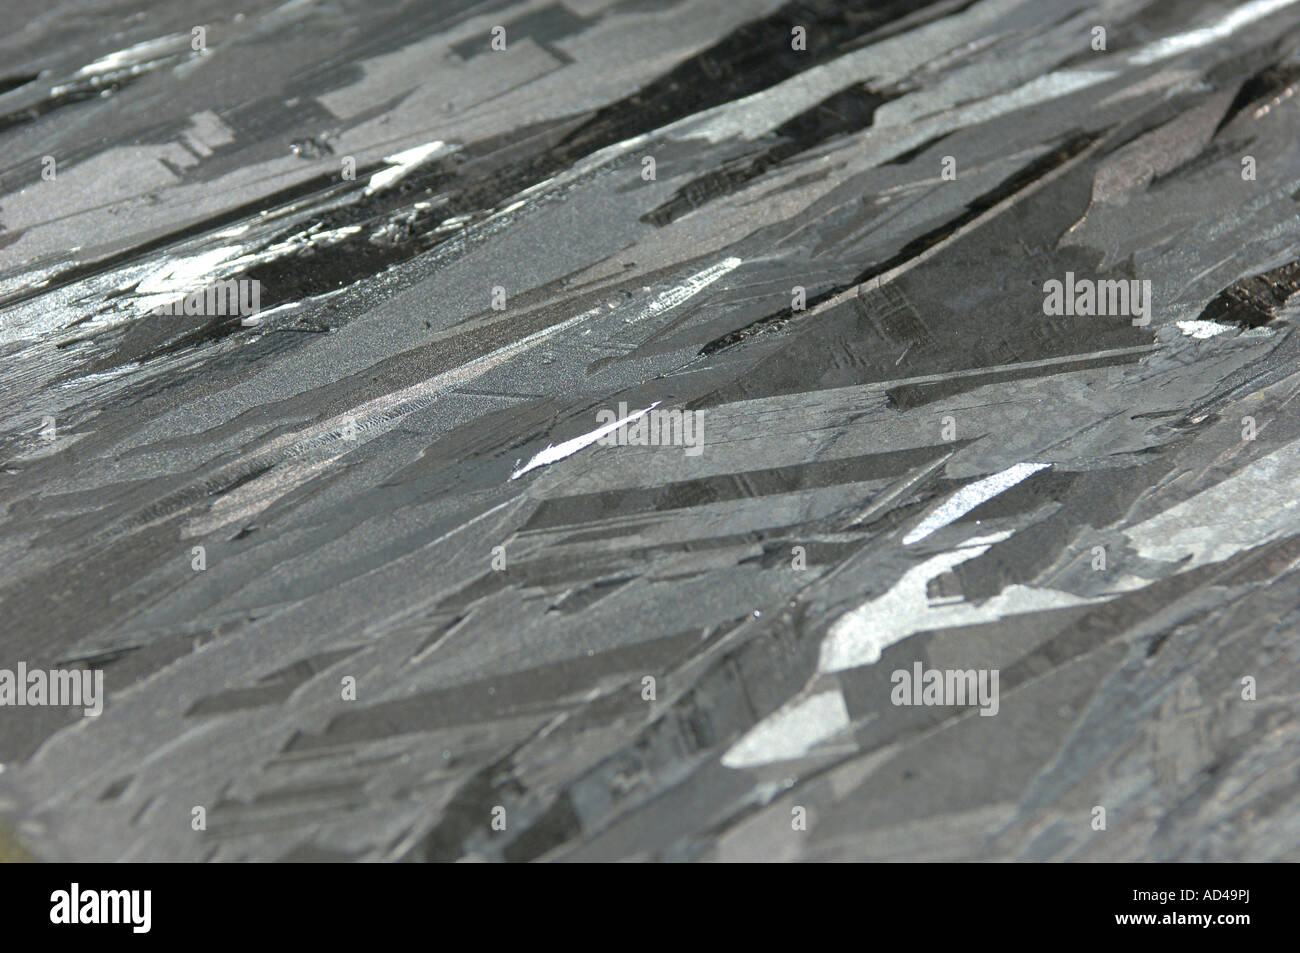 Chemical element Silicon - Stock Image